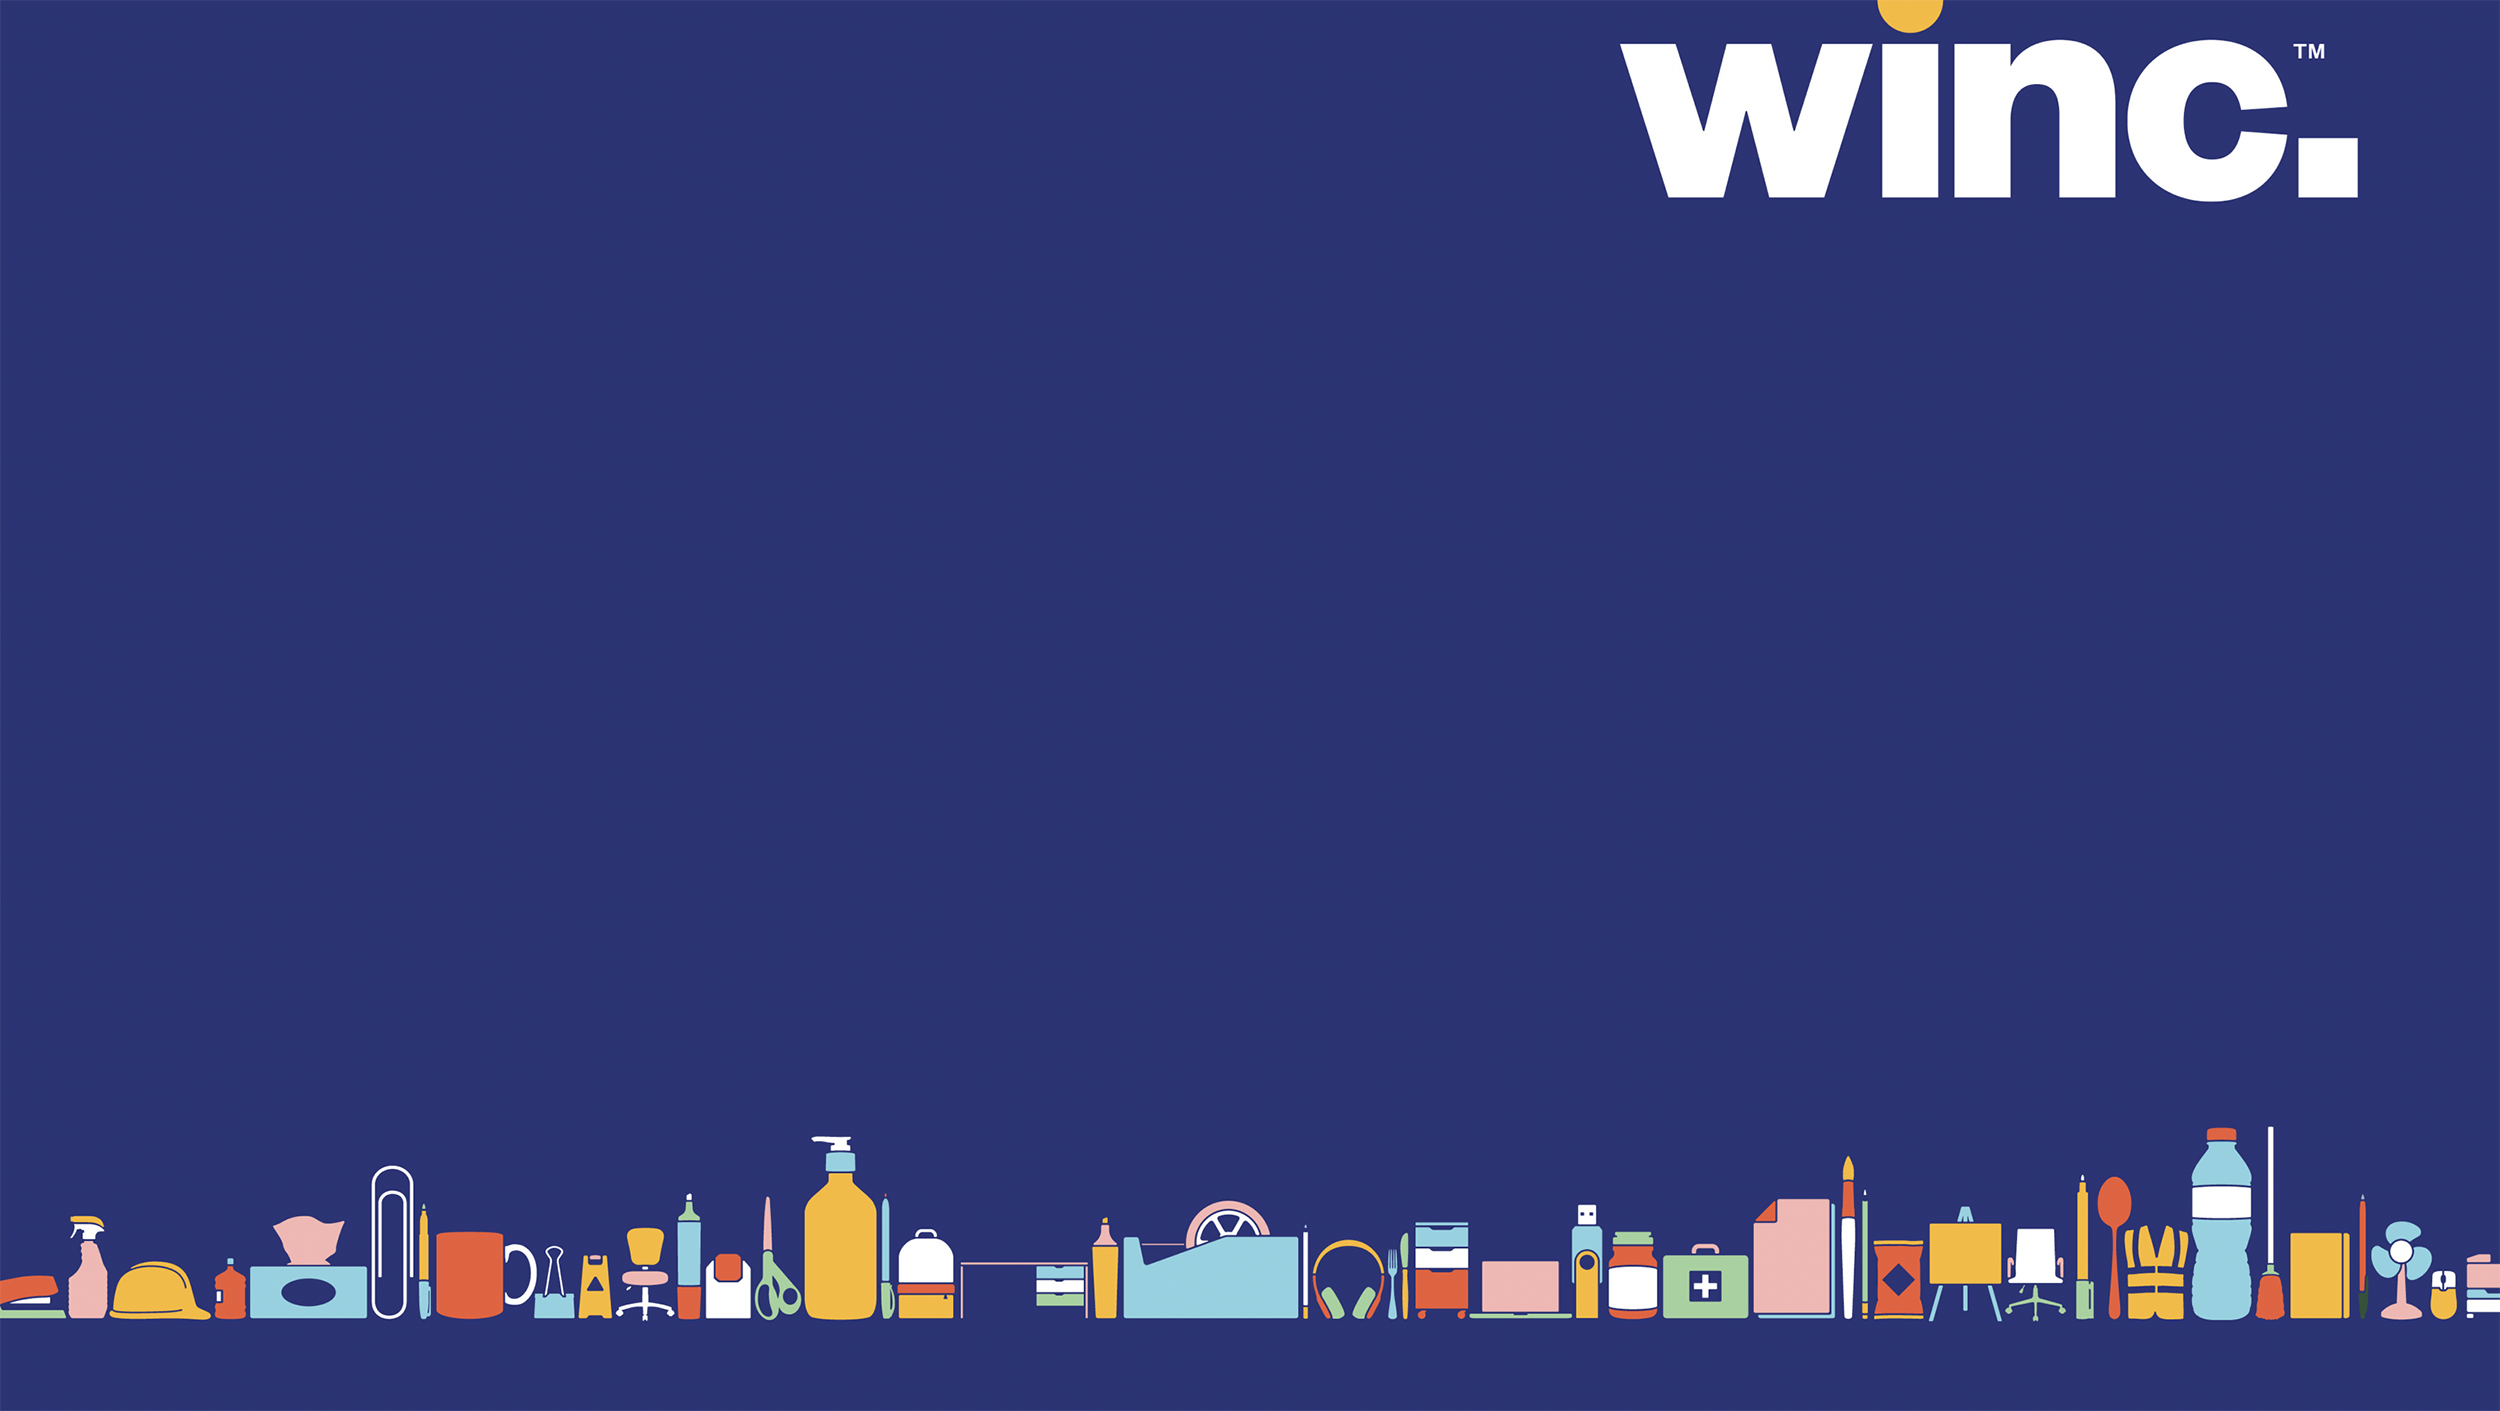 Winc_banner.png